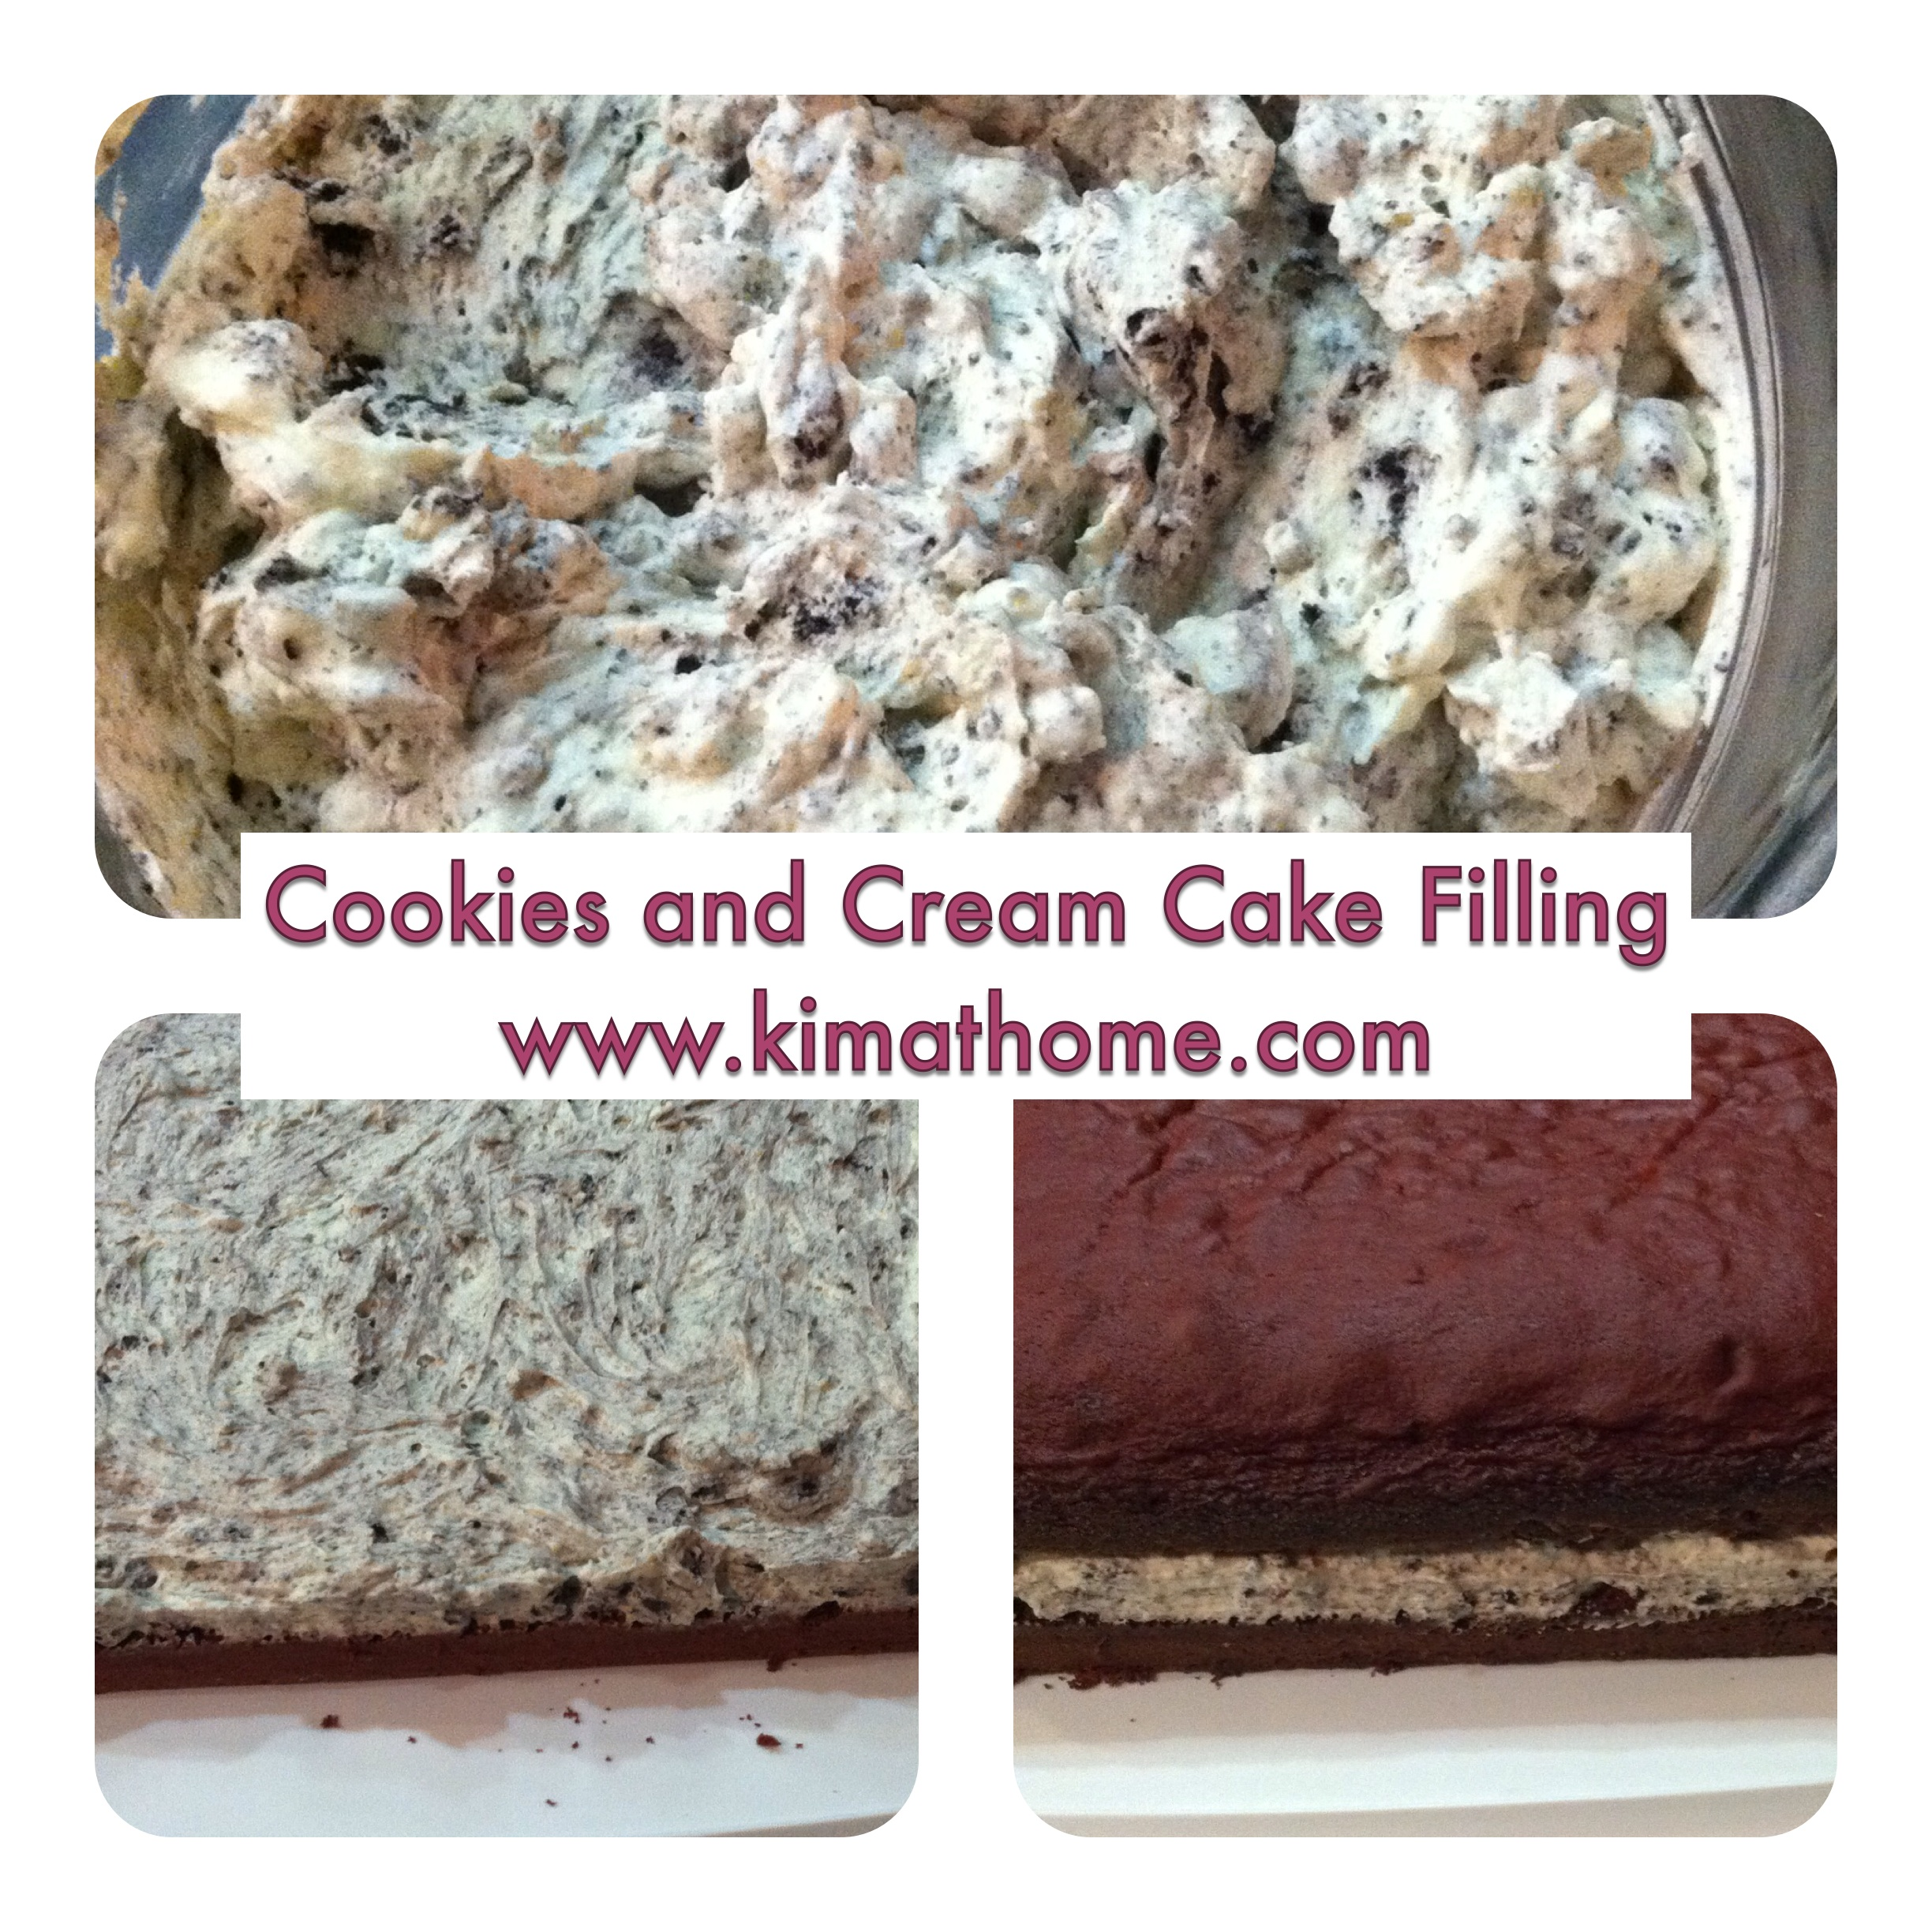 Cookies and Cream Cake Filling